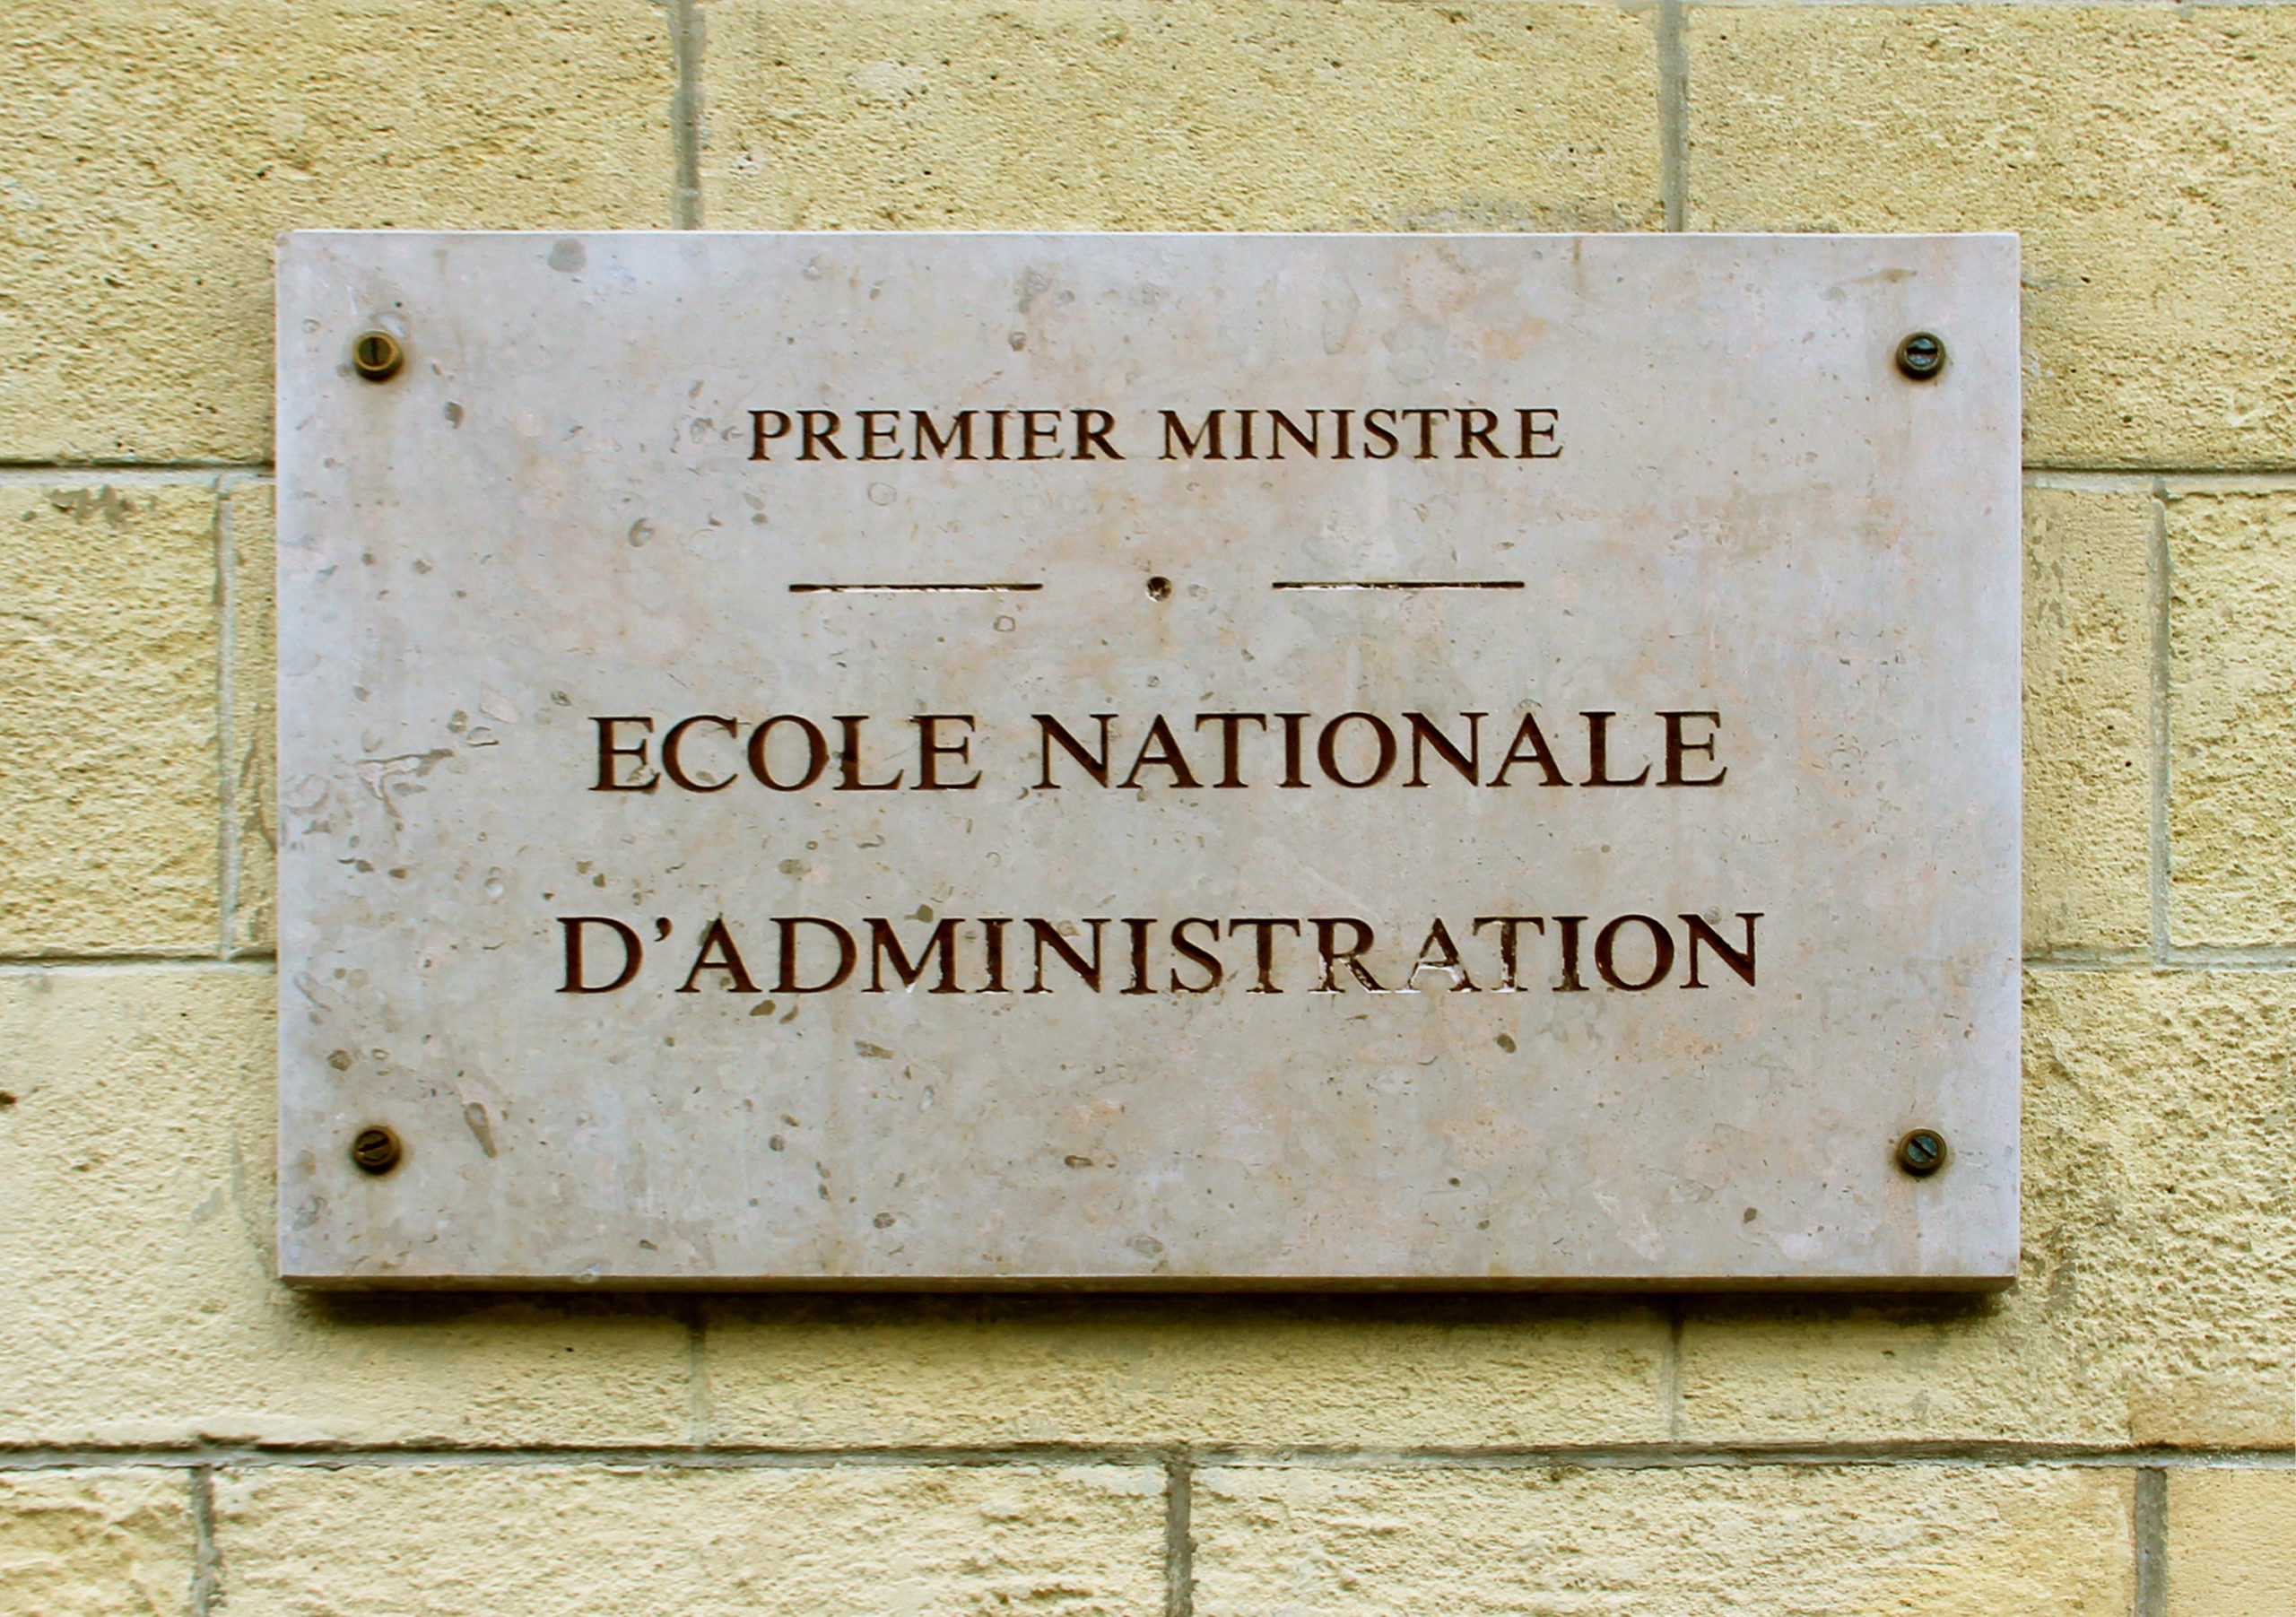 École_nationale_d'administration,_Paris_25_July_2015